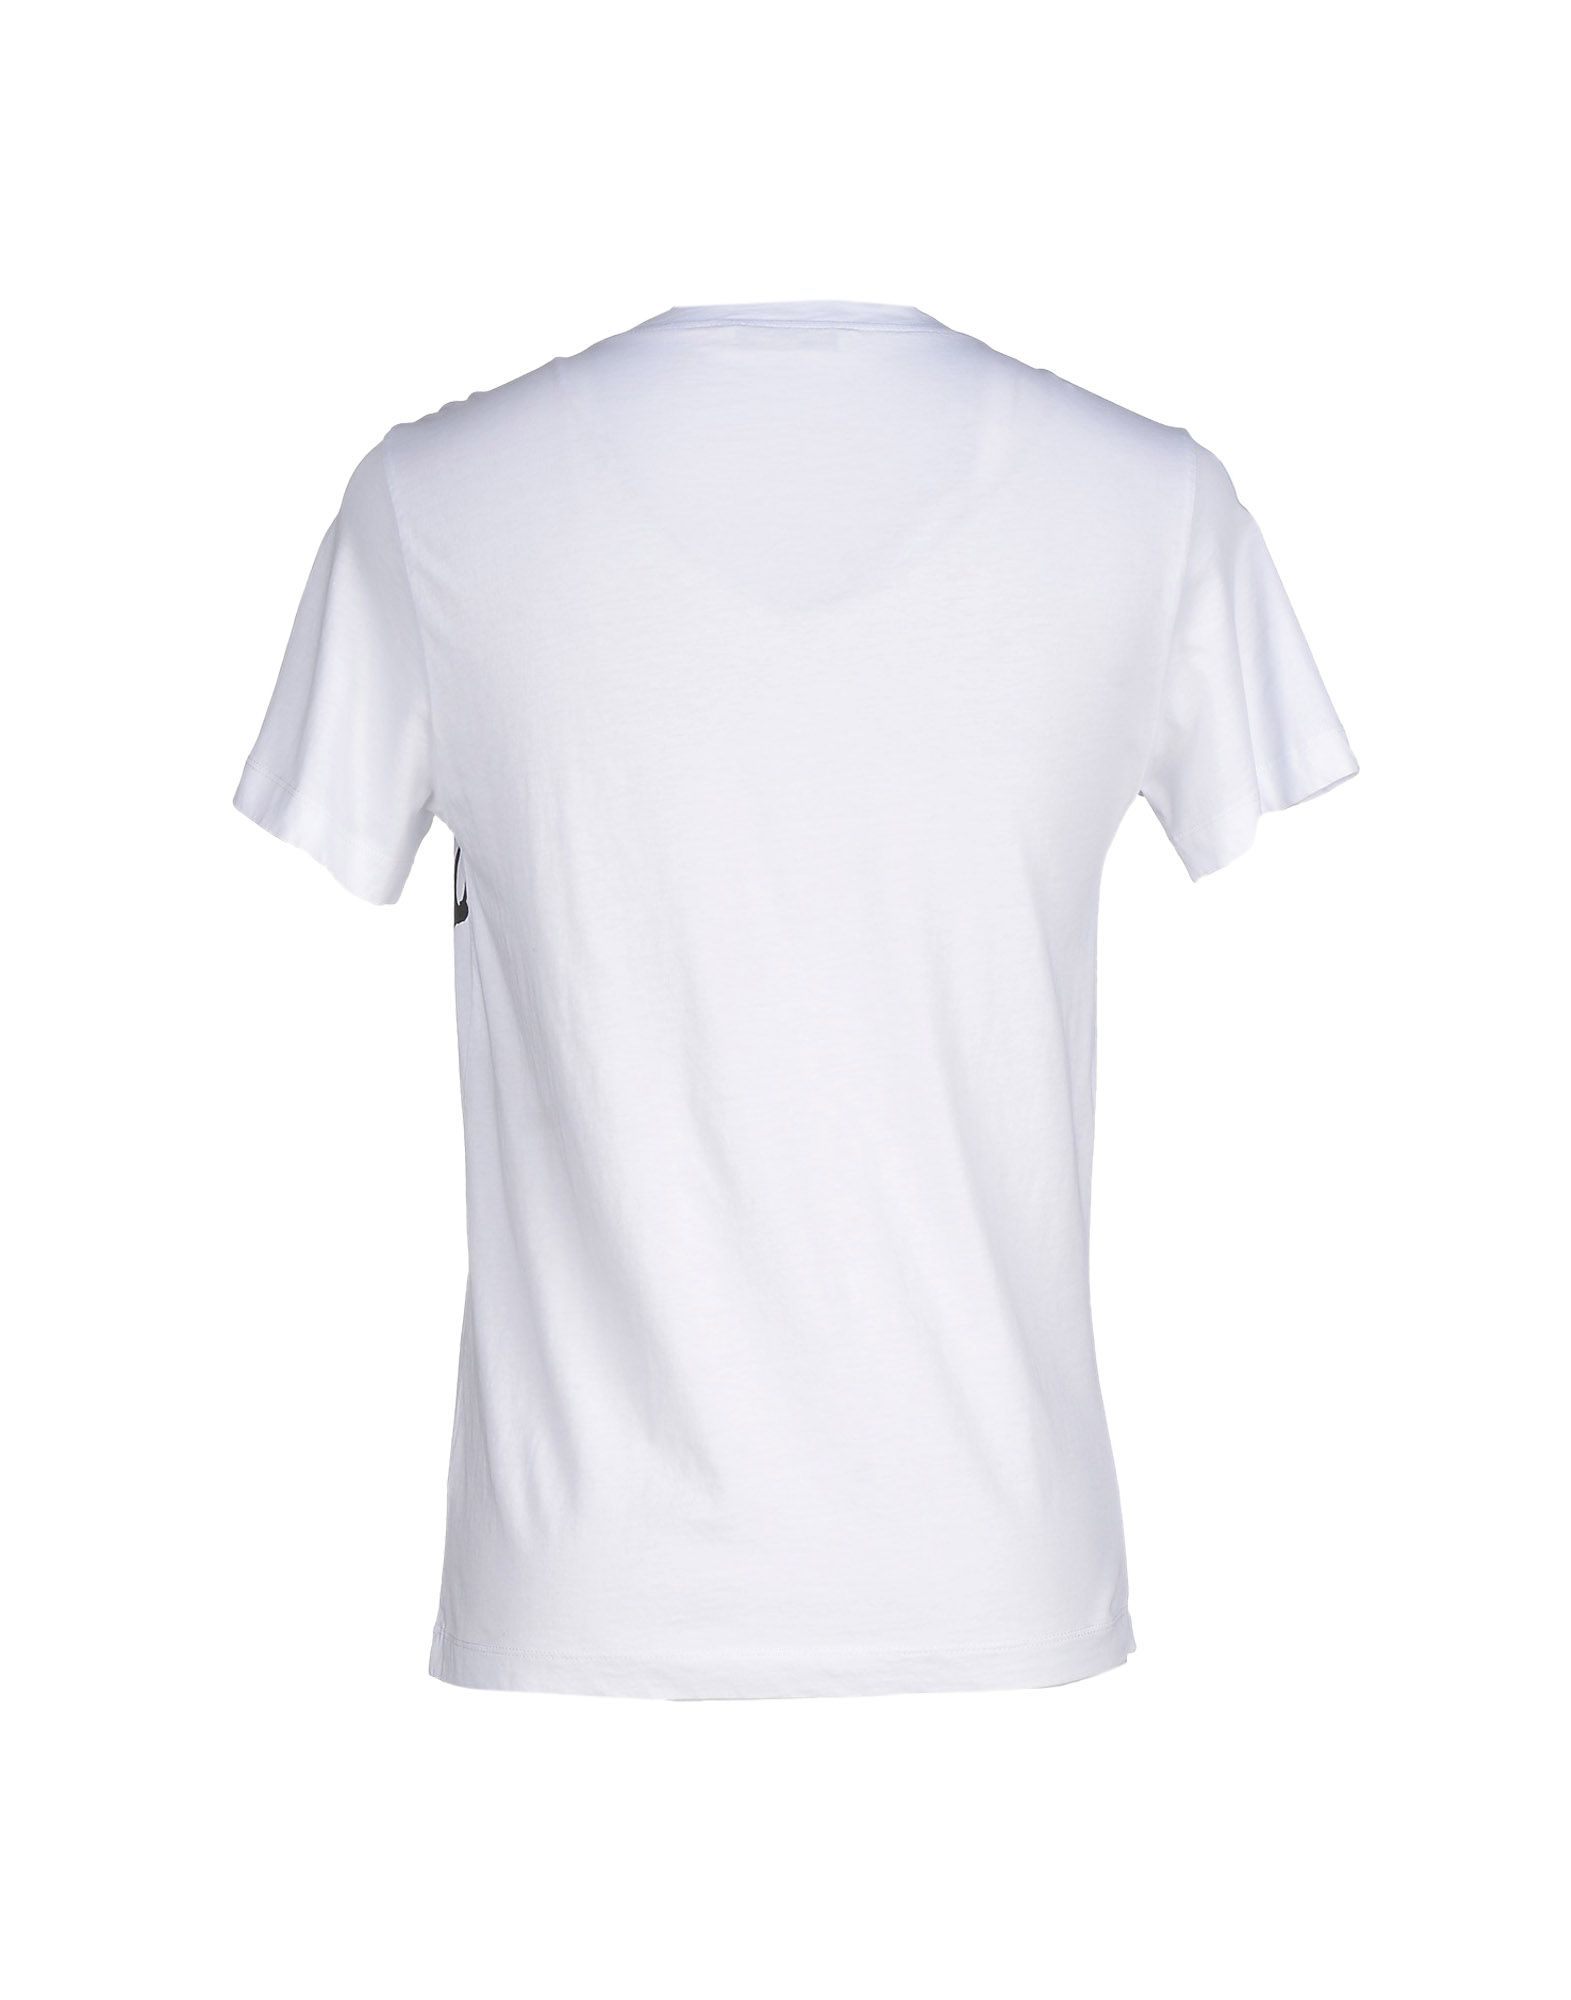 lyst balmain t shirt in white for men. Black Bedroom Furniture Sets. Home Design Ideas